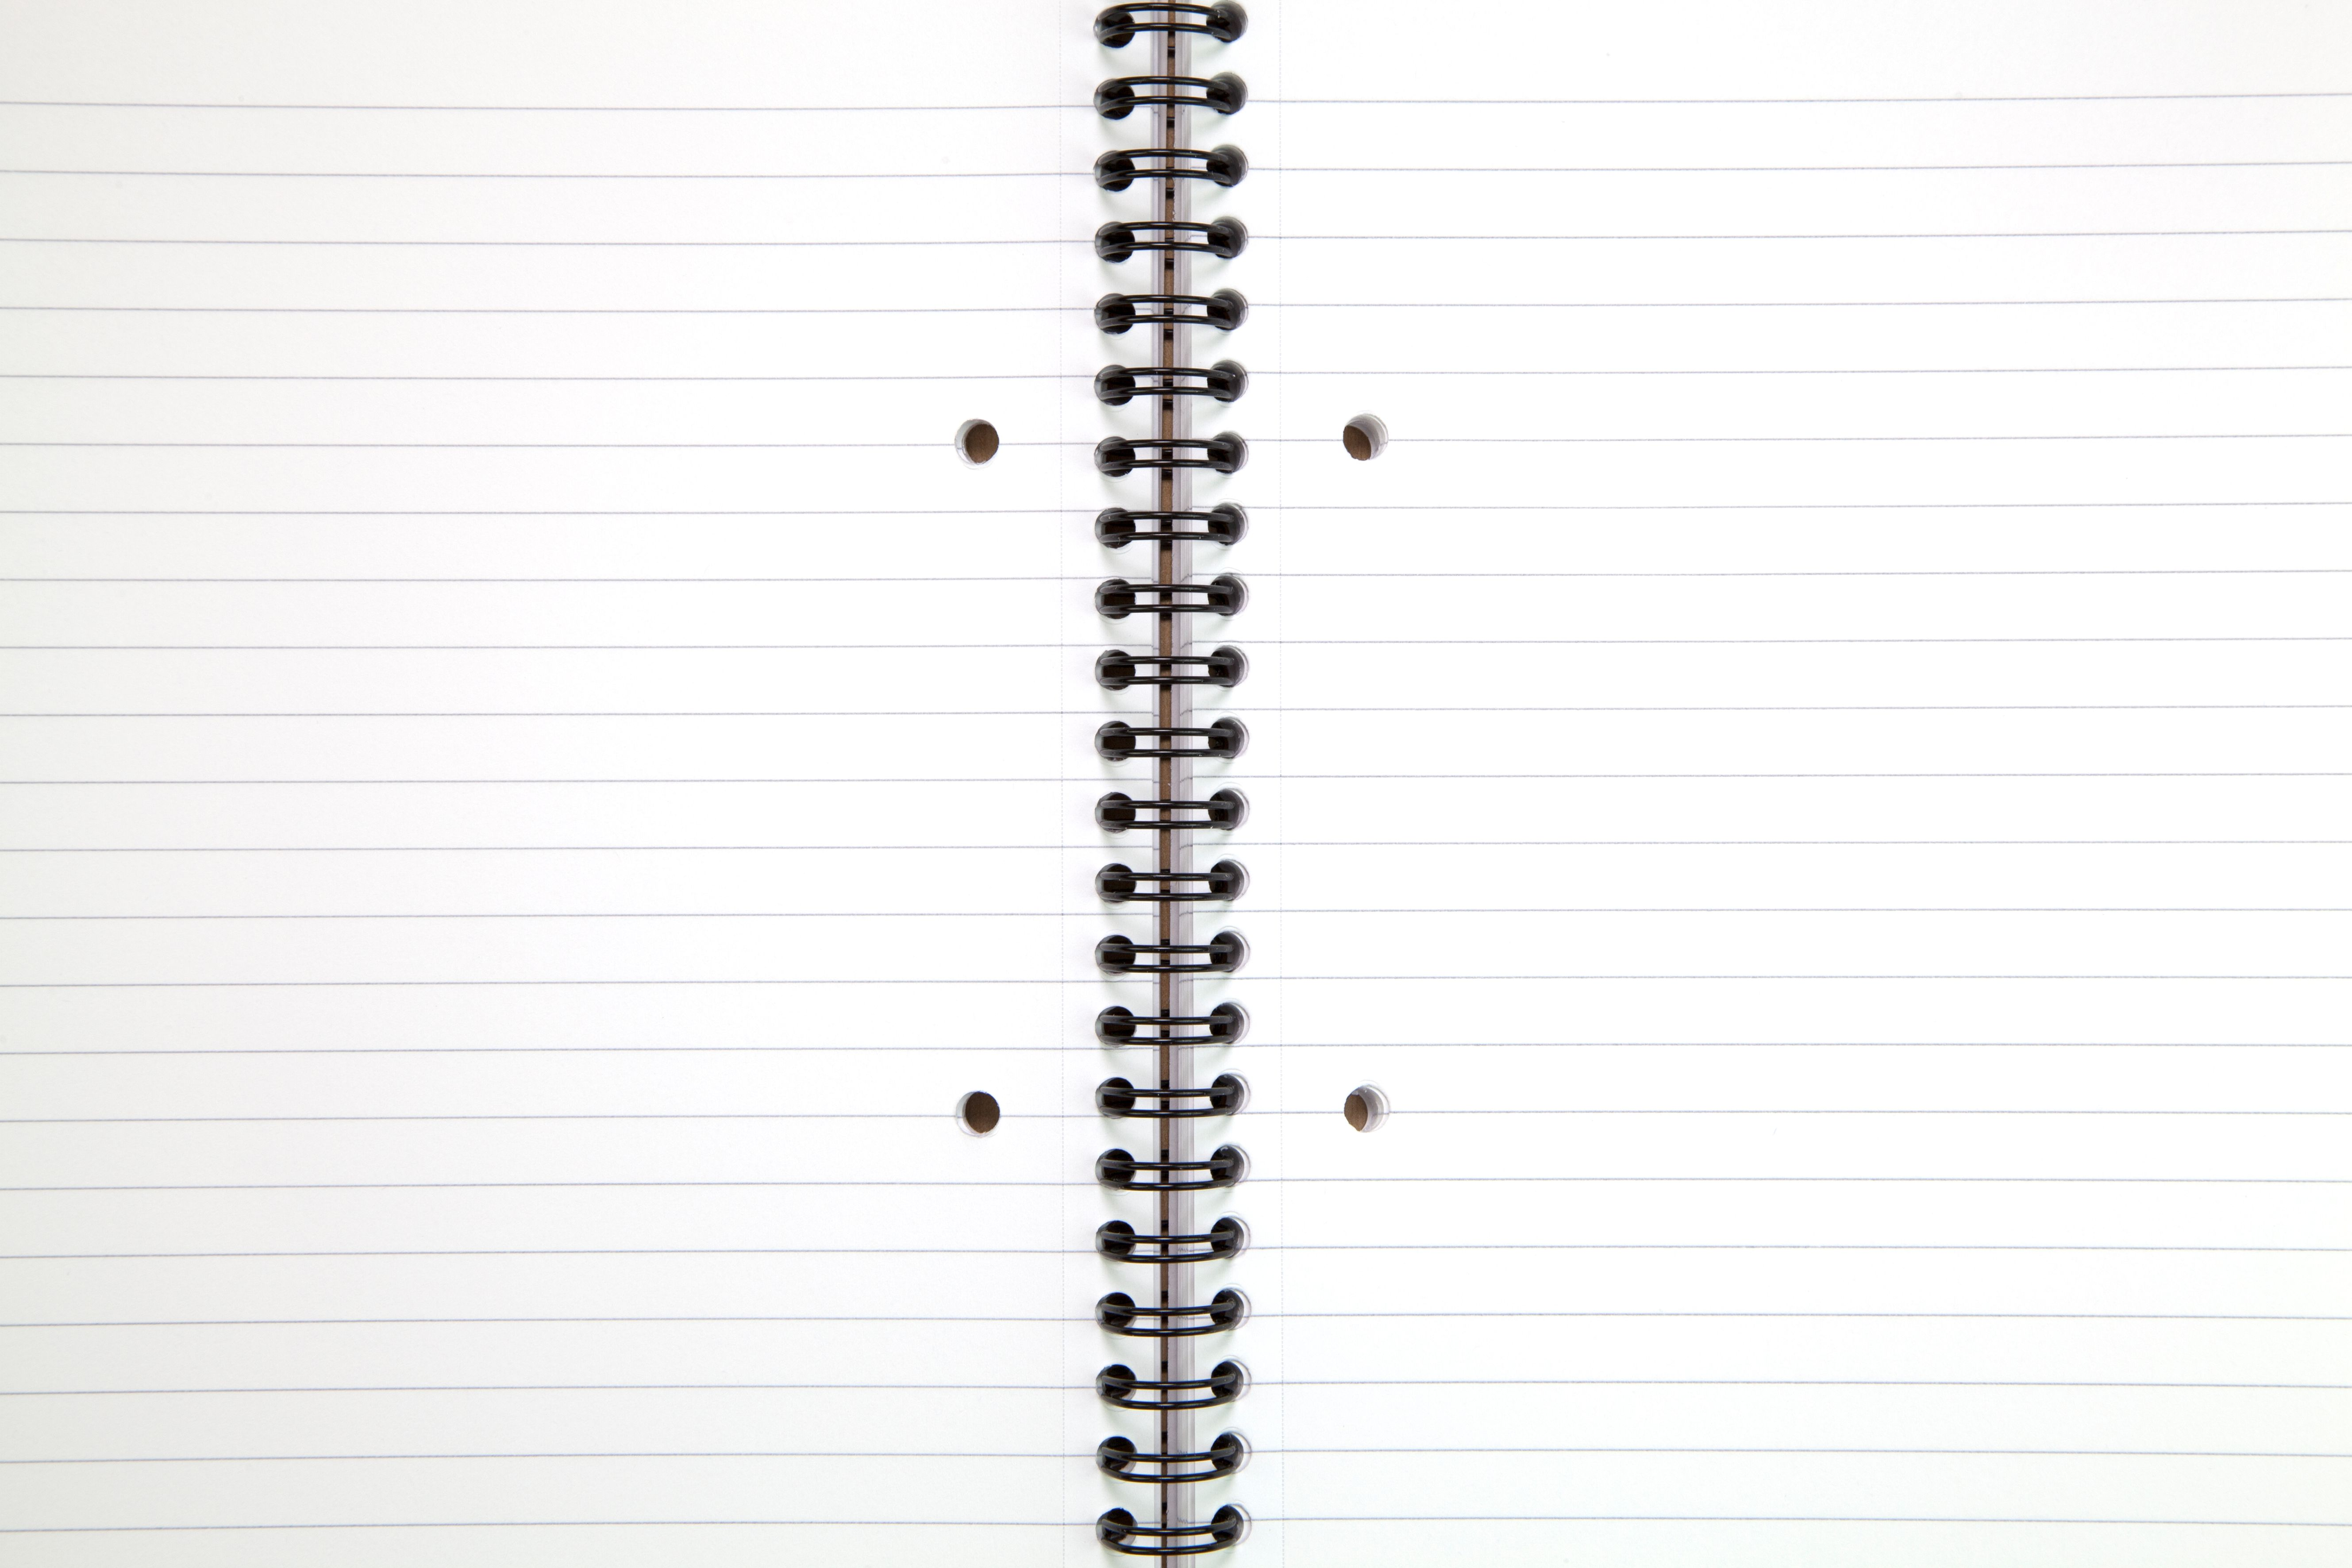 Cambridge A5 Wirebound Notebook Ruled 200 Pages Pack Of 3